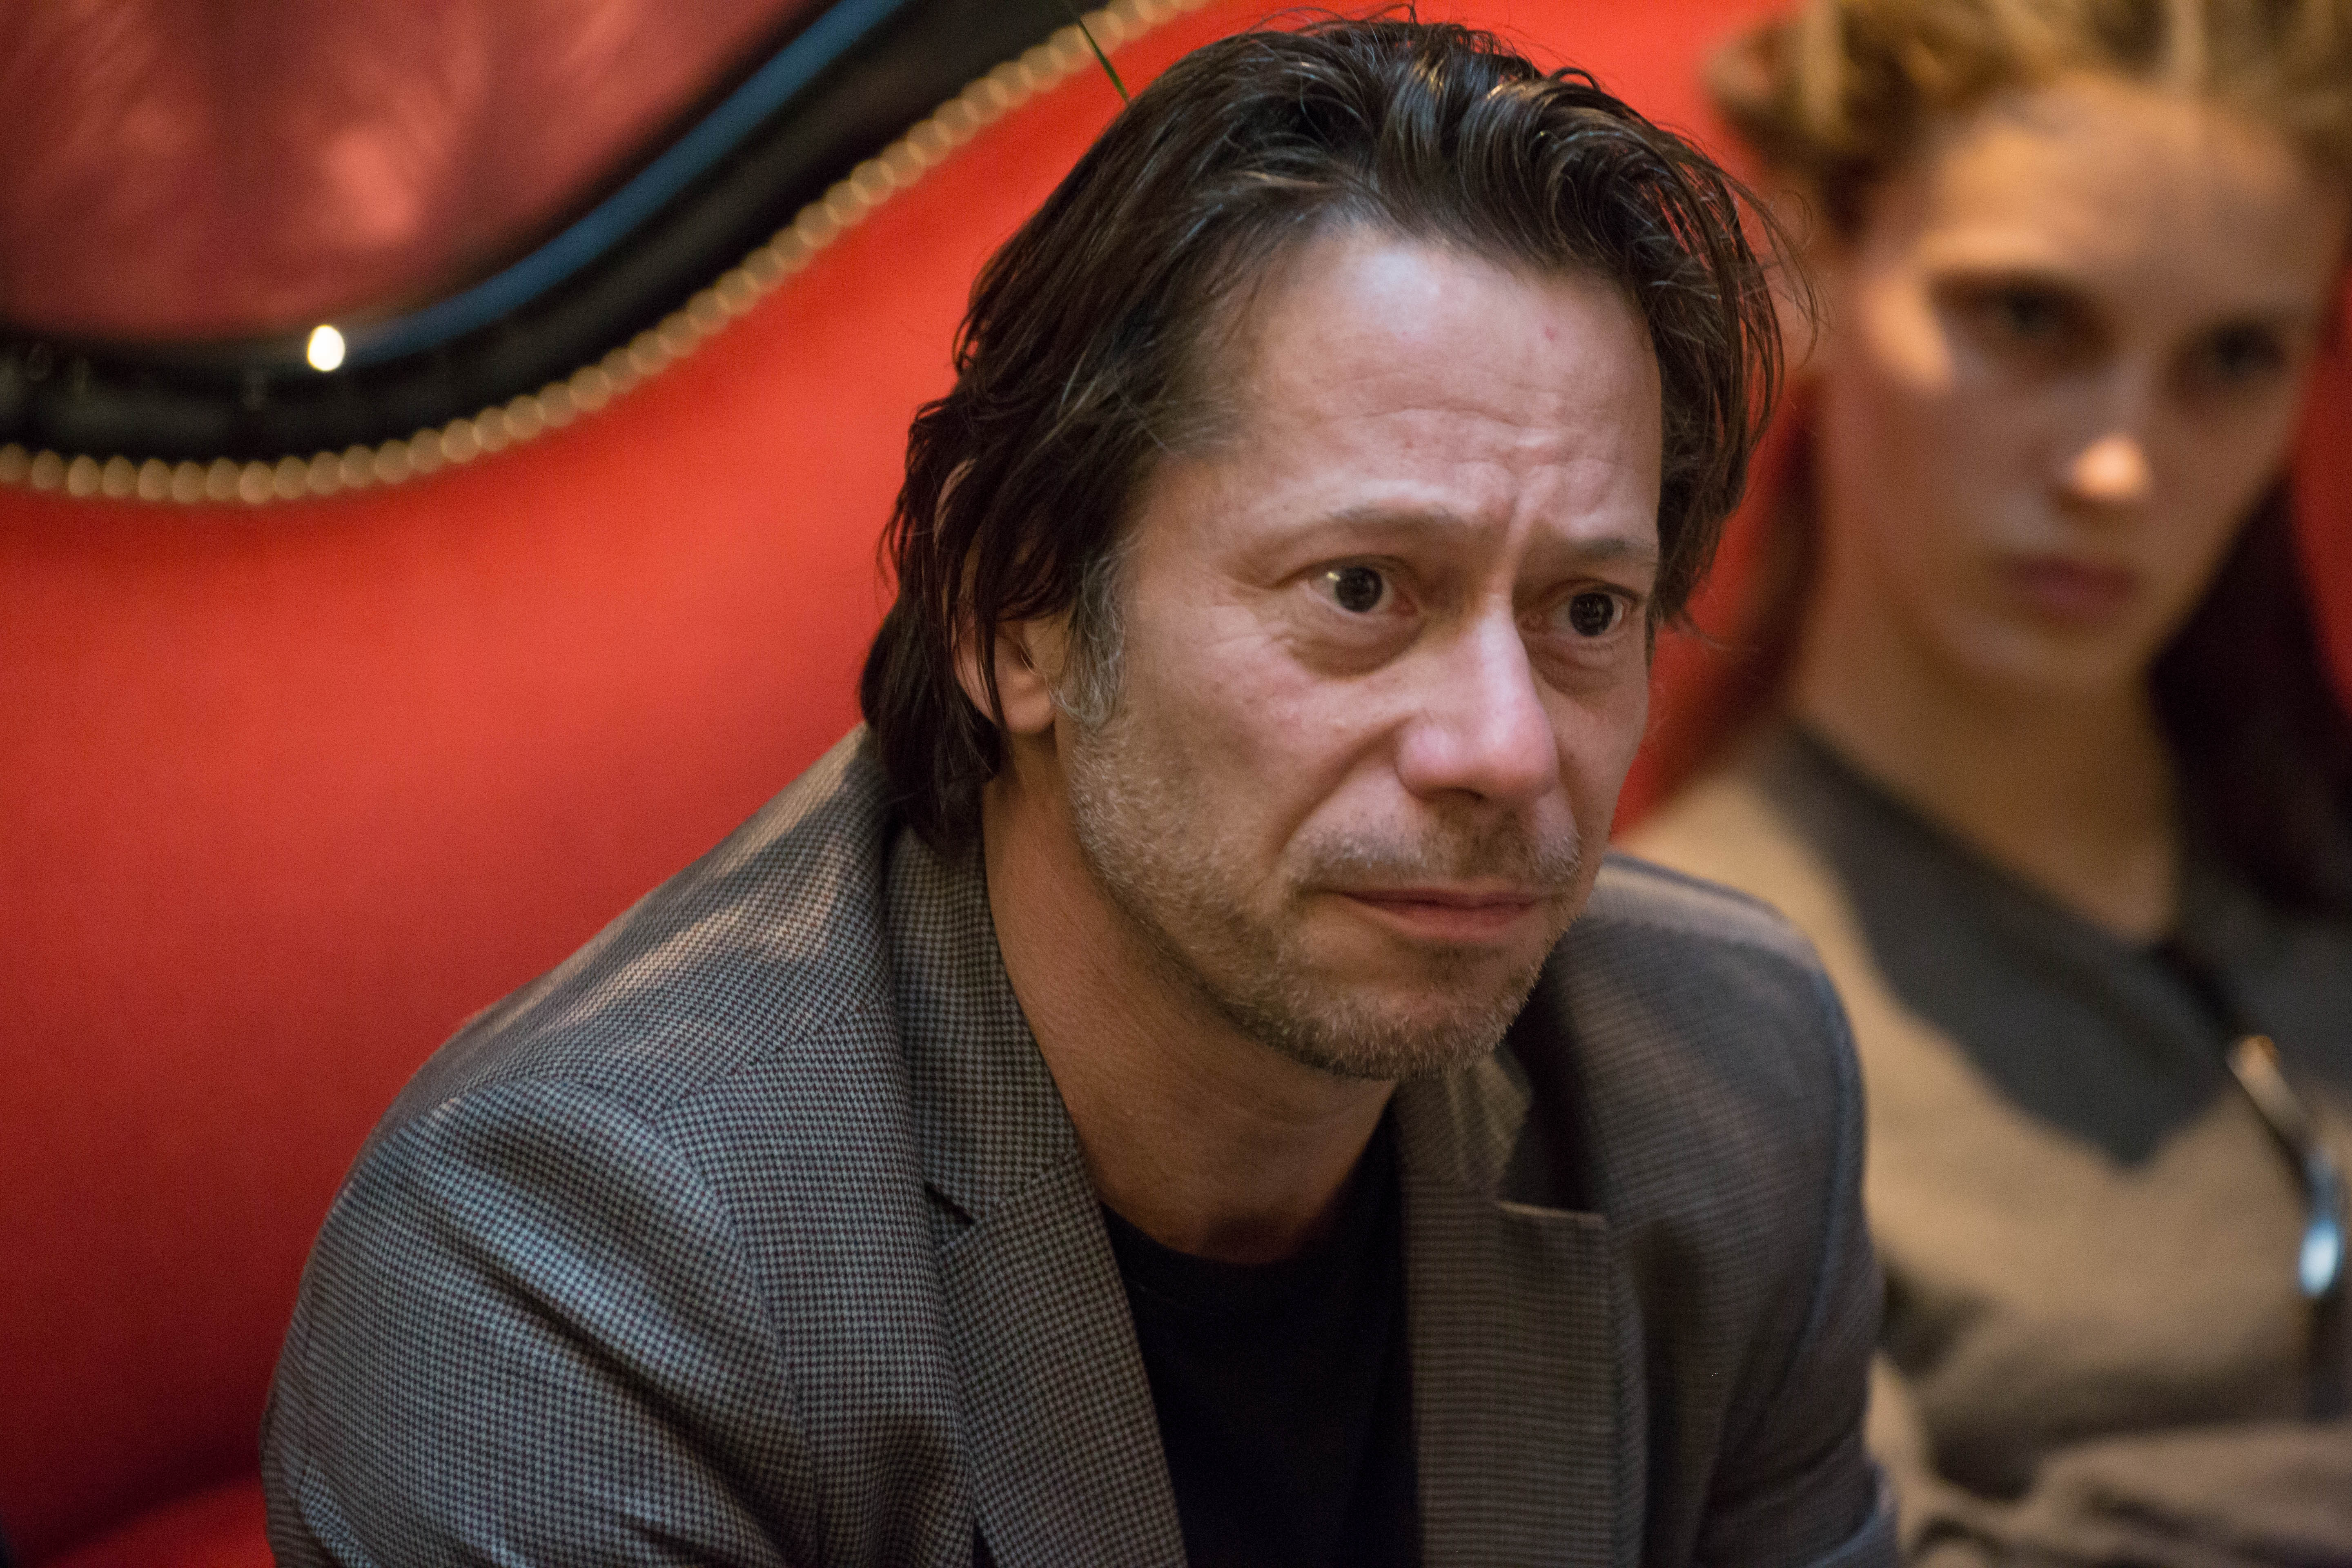 Mathieu Amalric Wikipedia